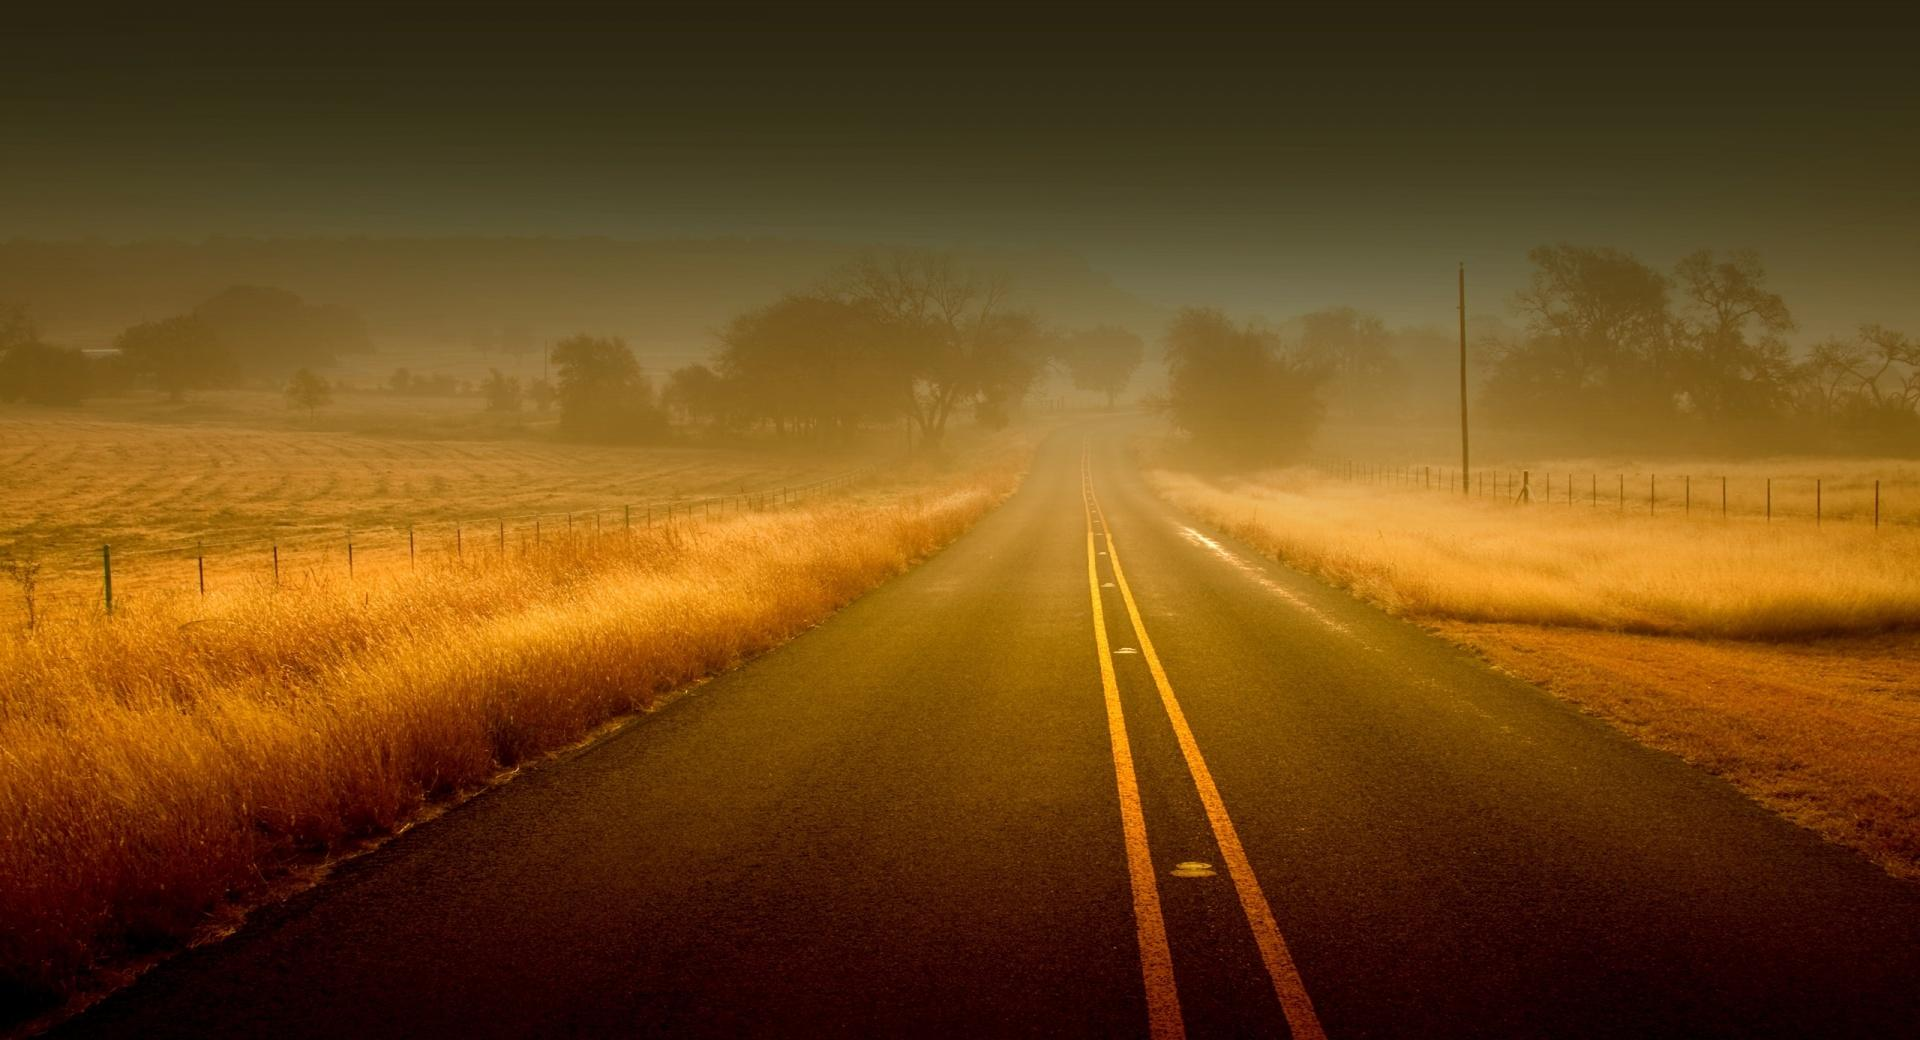 Misty Road wallpapers HD quality